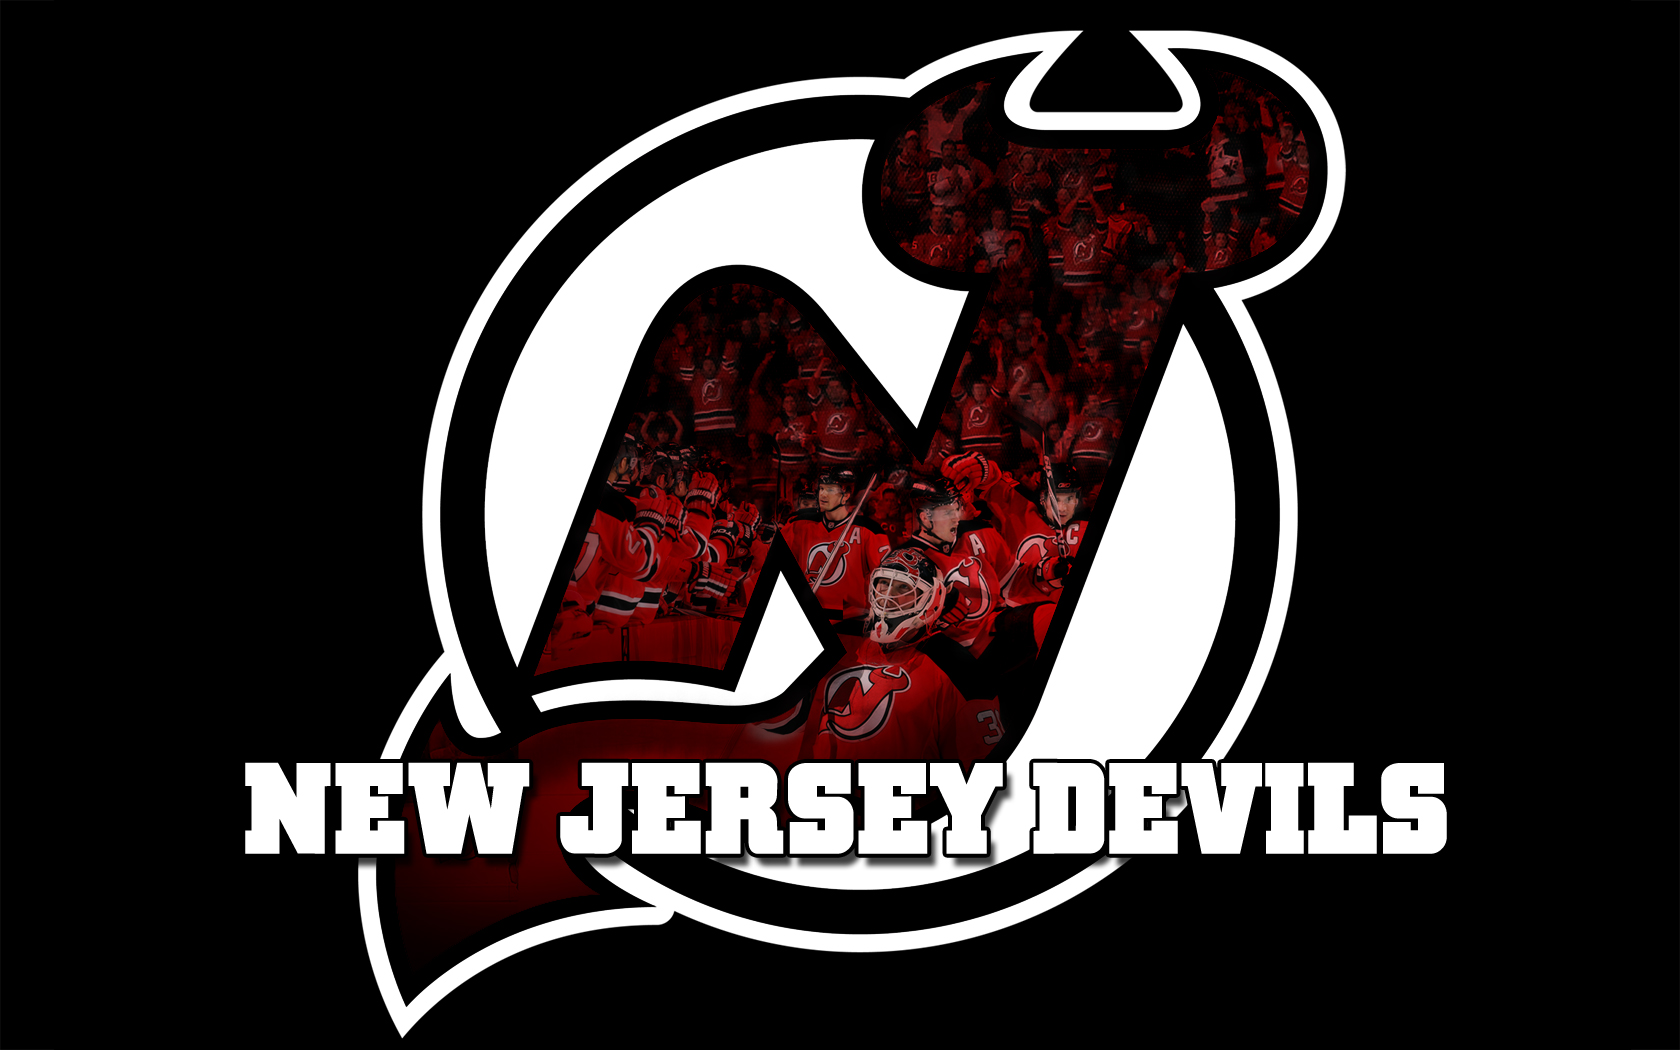 New Jersey Devils wallpapers New Jersey Devils background   Page 9 1680x1050